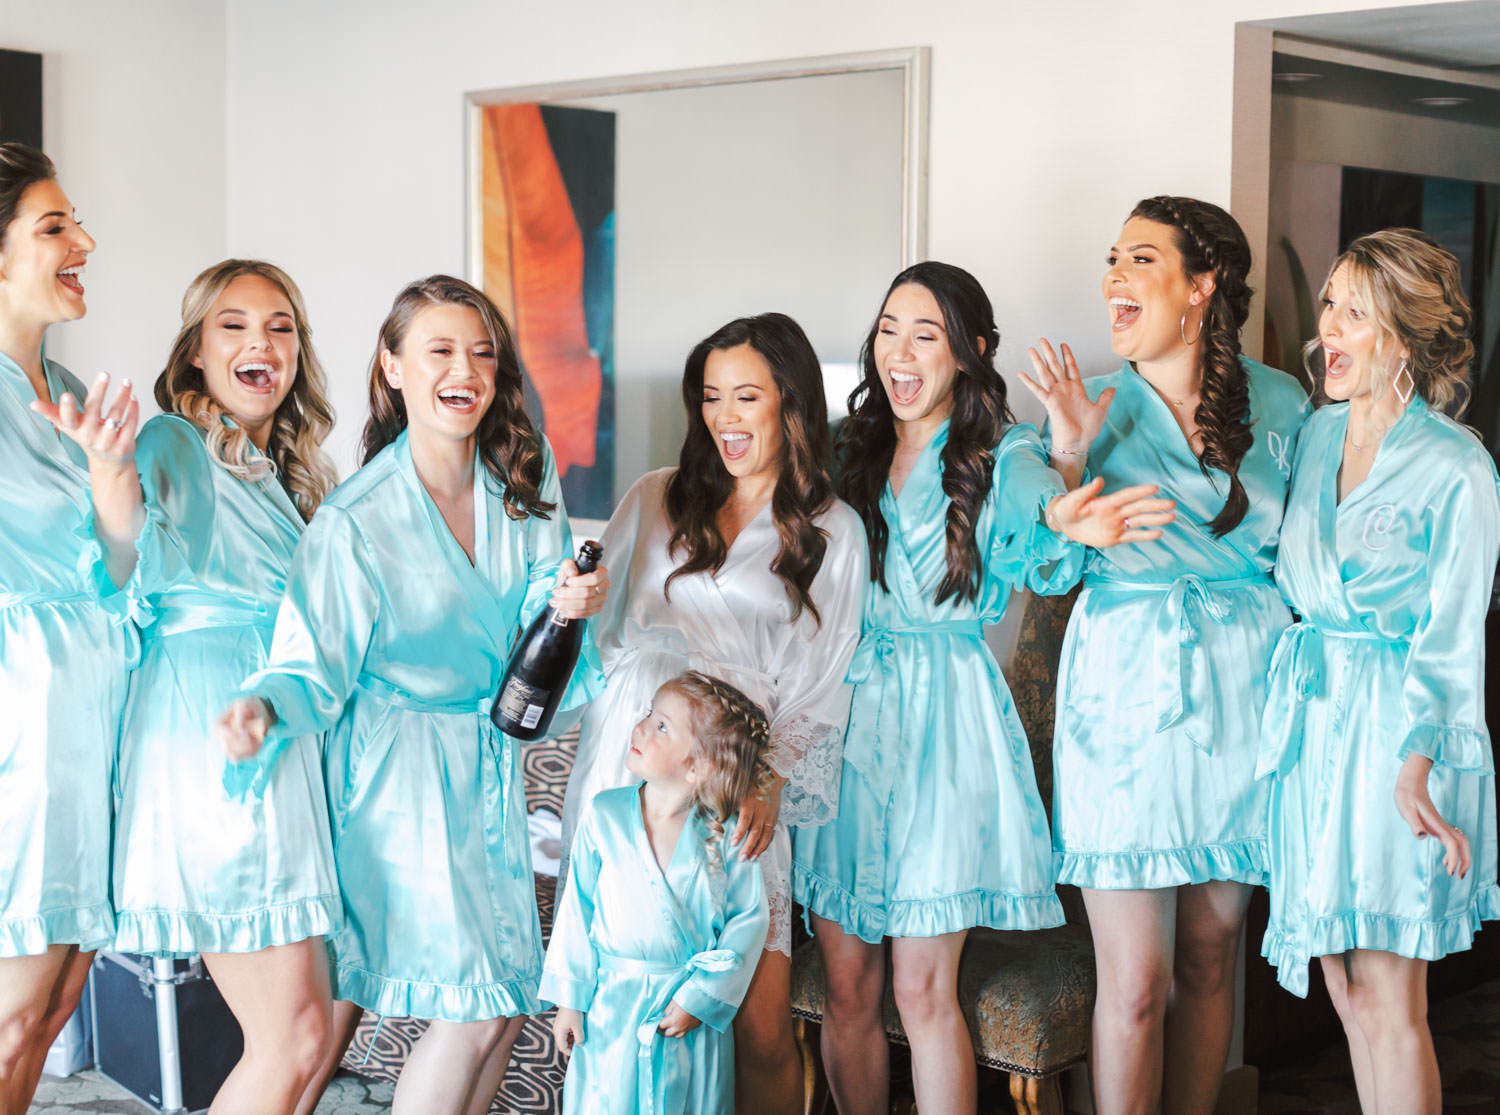 Bridal party with turquoise silk robes and bride in white robe popping champagne, Wedding at Humphreys Half Moon Inn by Cavin Elizabeth Photography